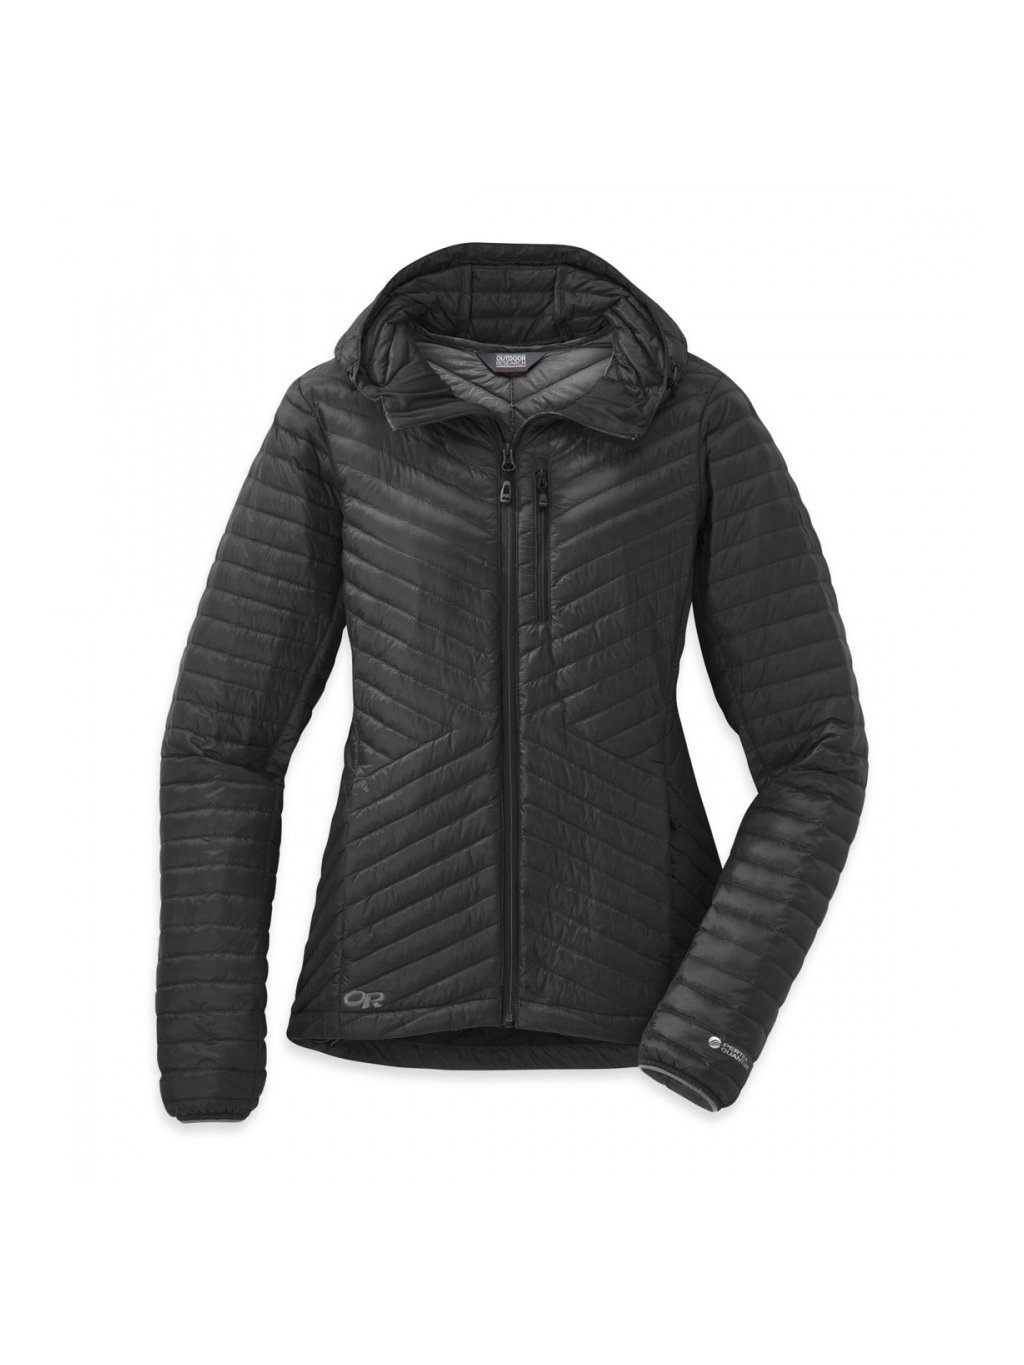 OUTDOOR RESEARCH Women's Verismo Hooded Down Jacket, Black (velikost XS)